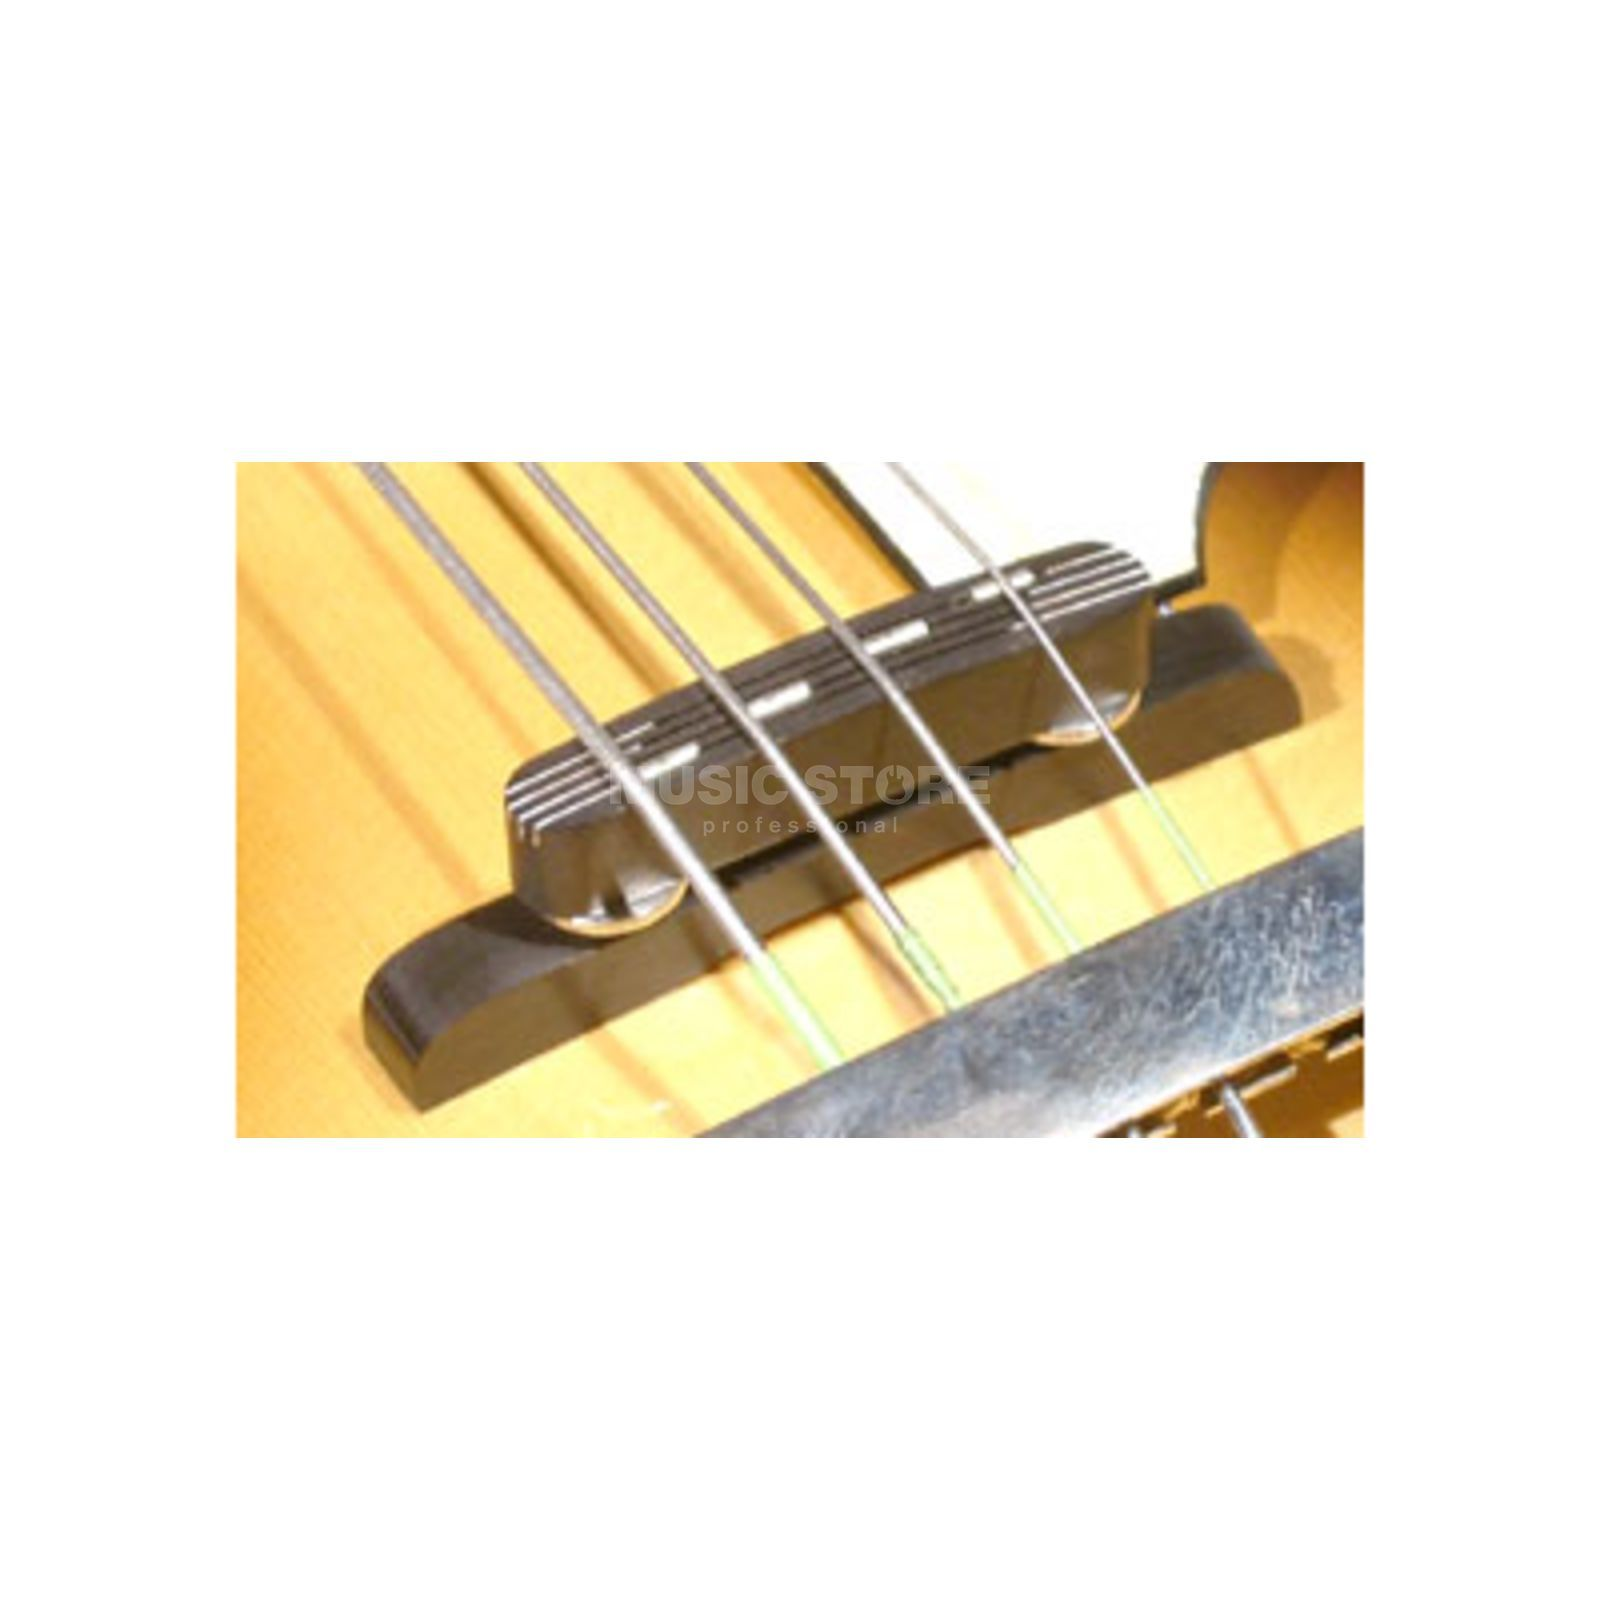 Höfner H72/20B Bridge for Violin Bass  Изображение товара